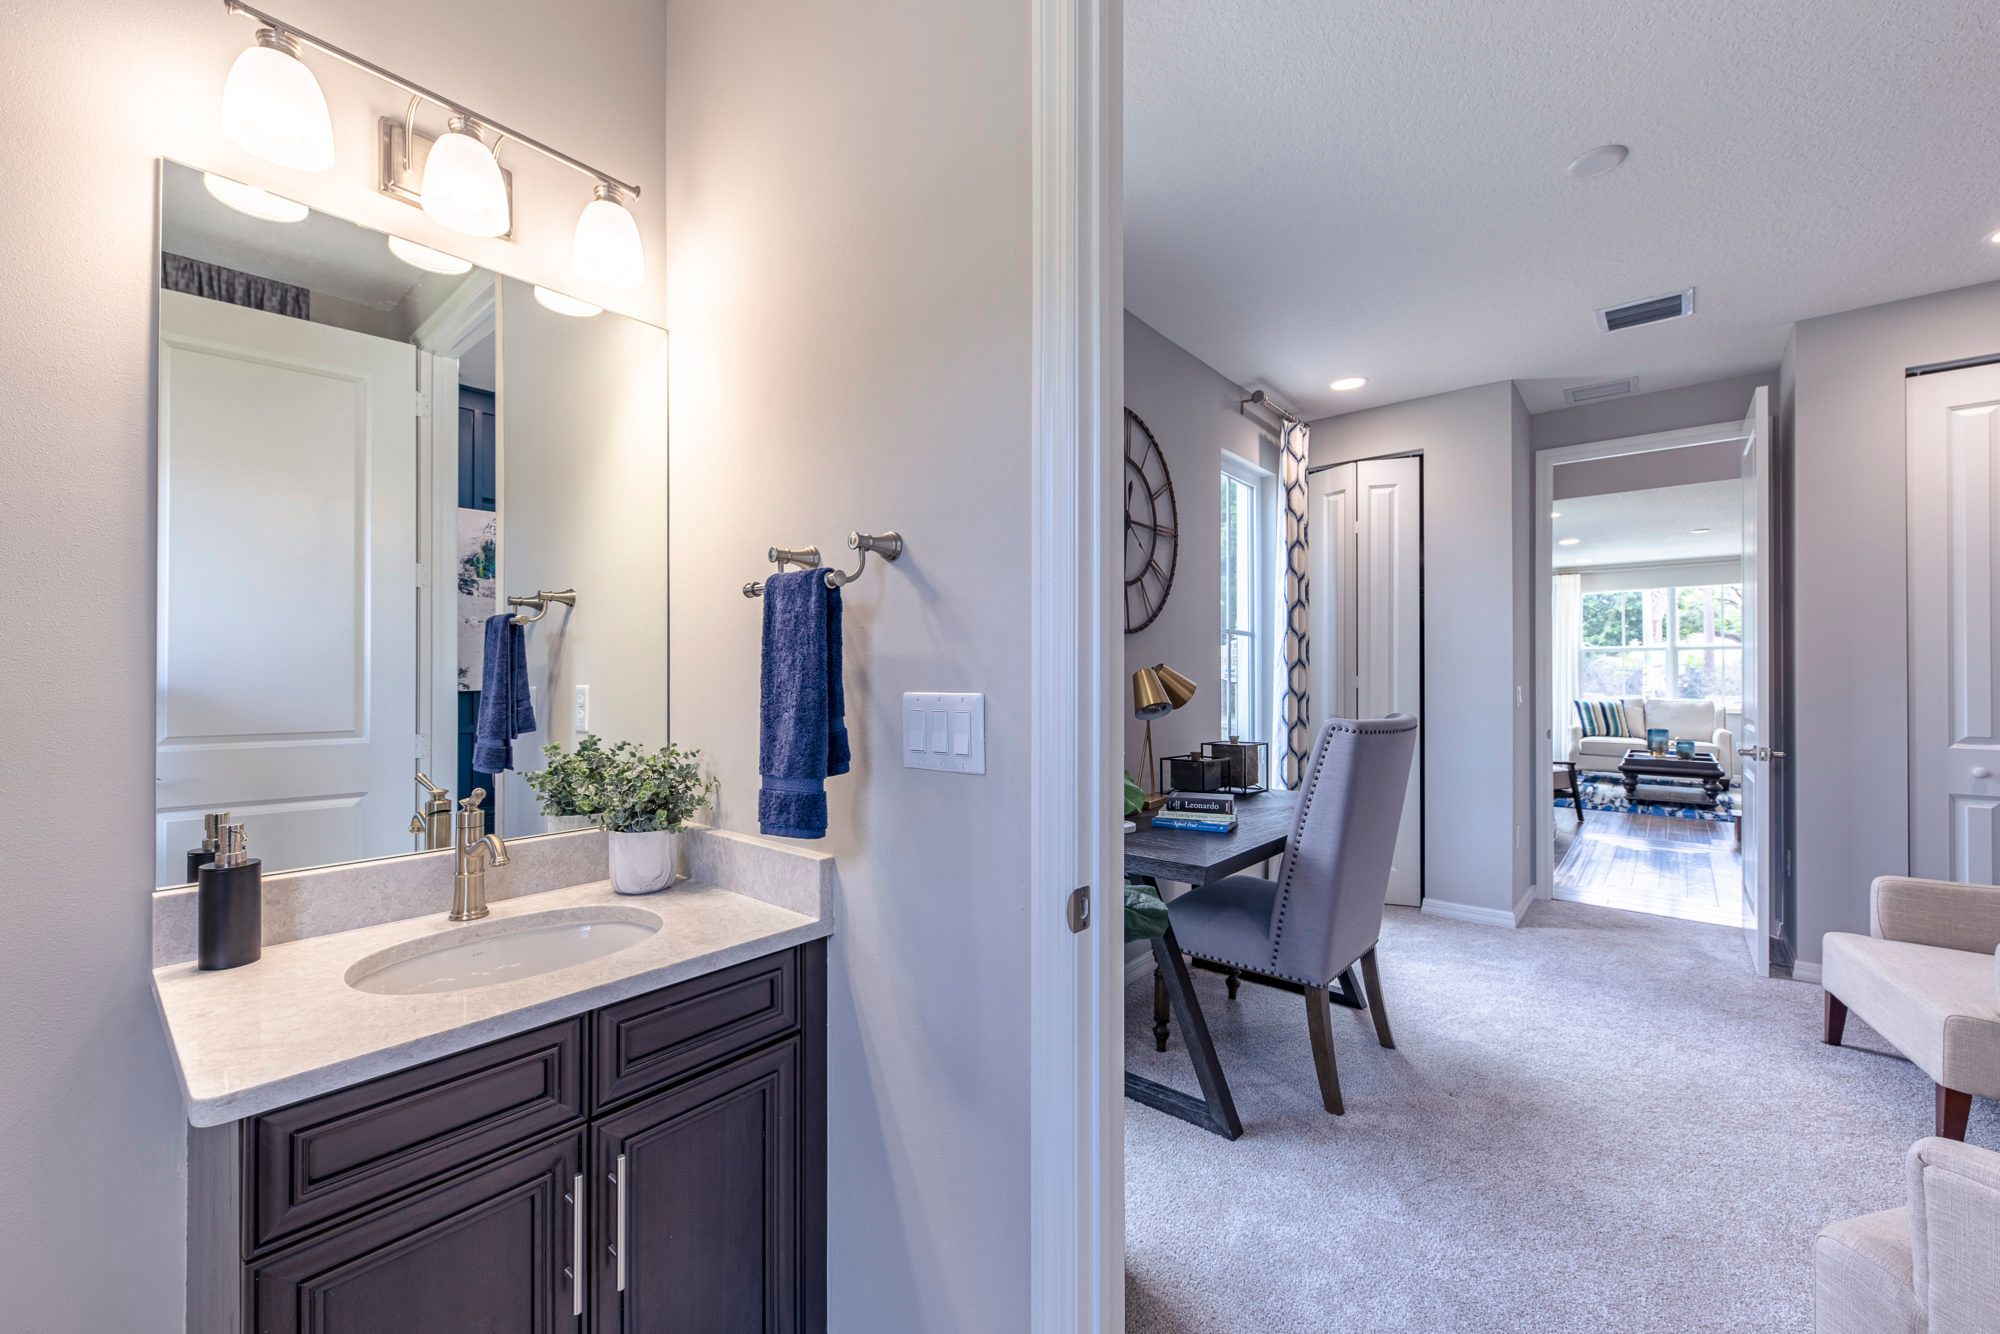 Bathroom featured in the Sophia By 5 Star Development in Palm Beach County, FL